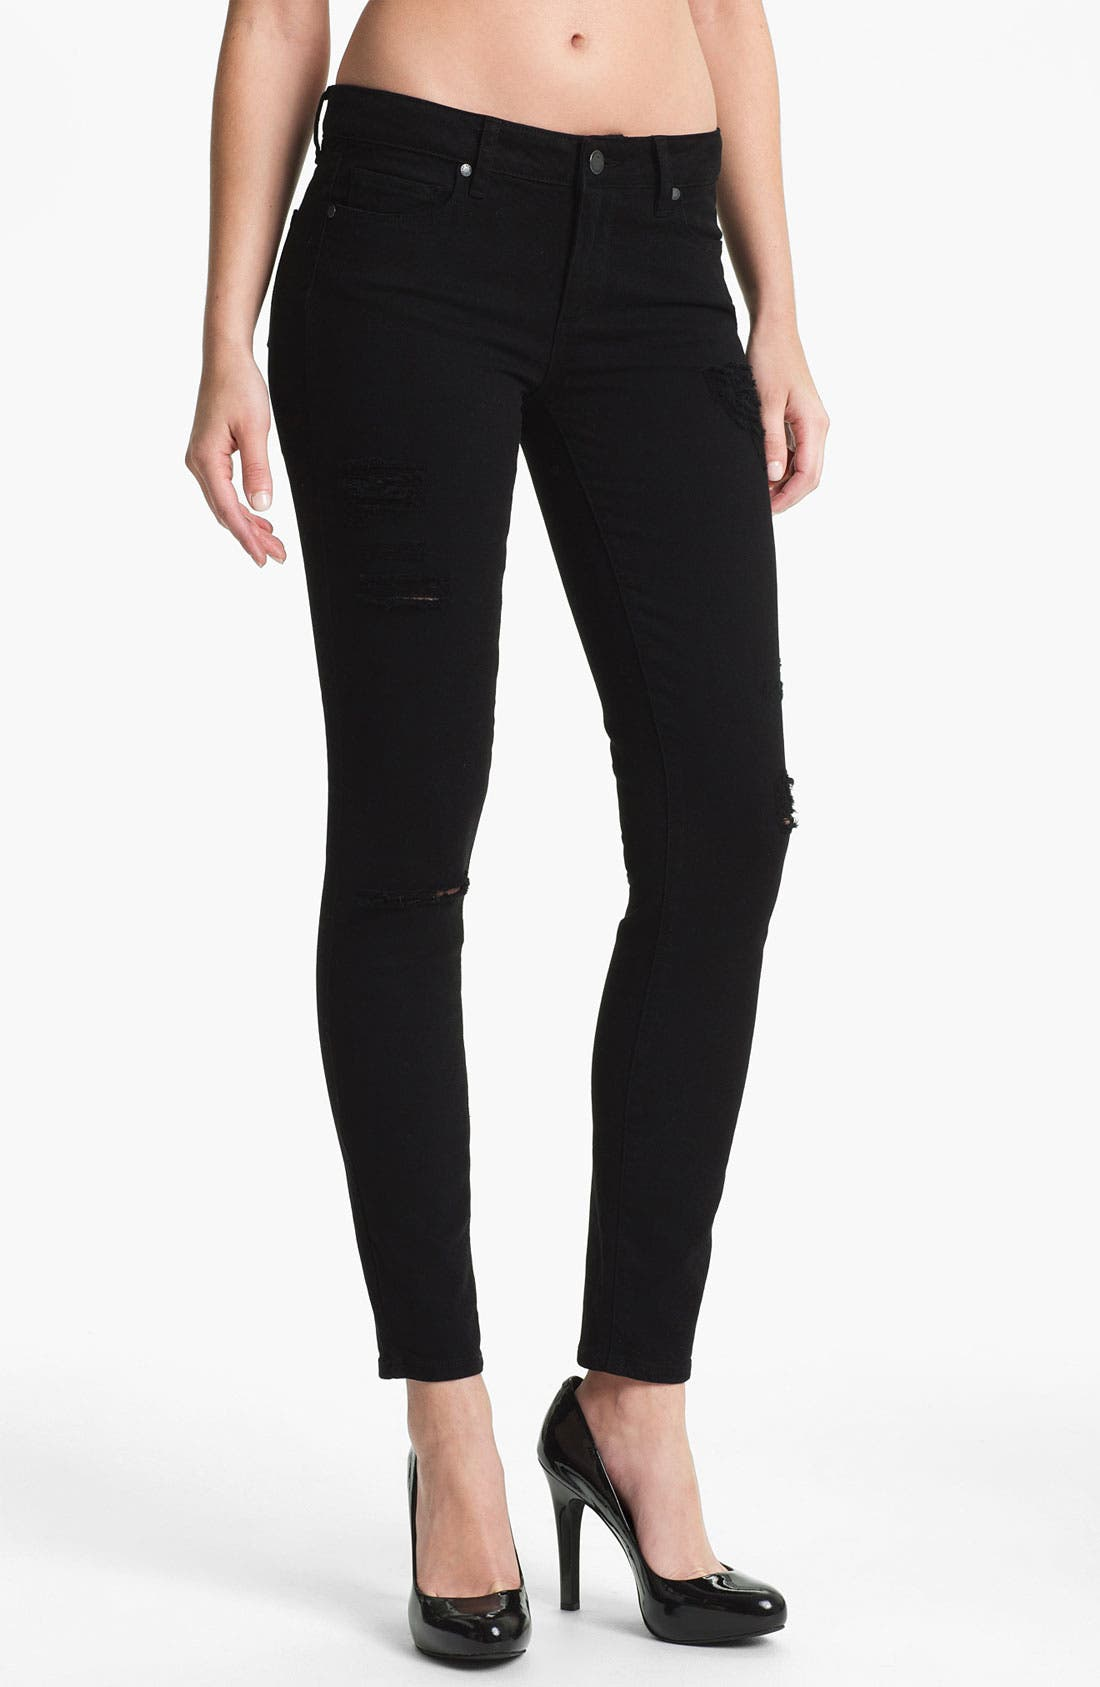 Alternate Image 1 Selected - Paige Denim 'Verdugo' Stretch Skinny Jeans (Black)